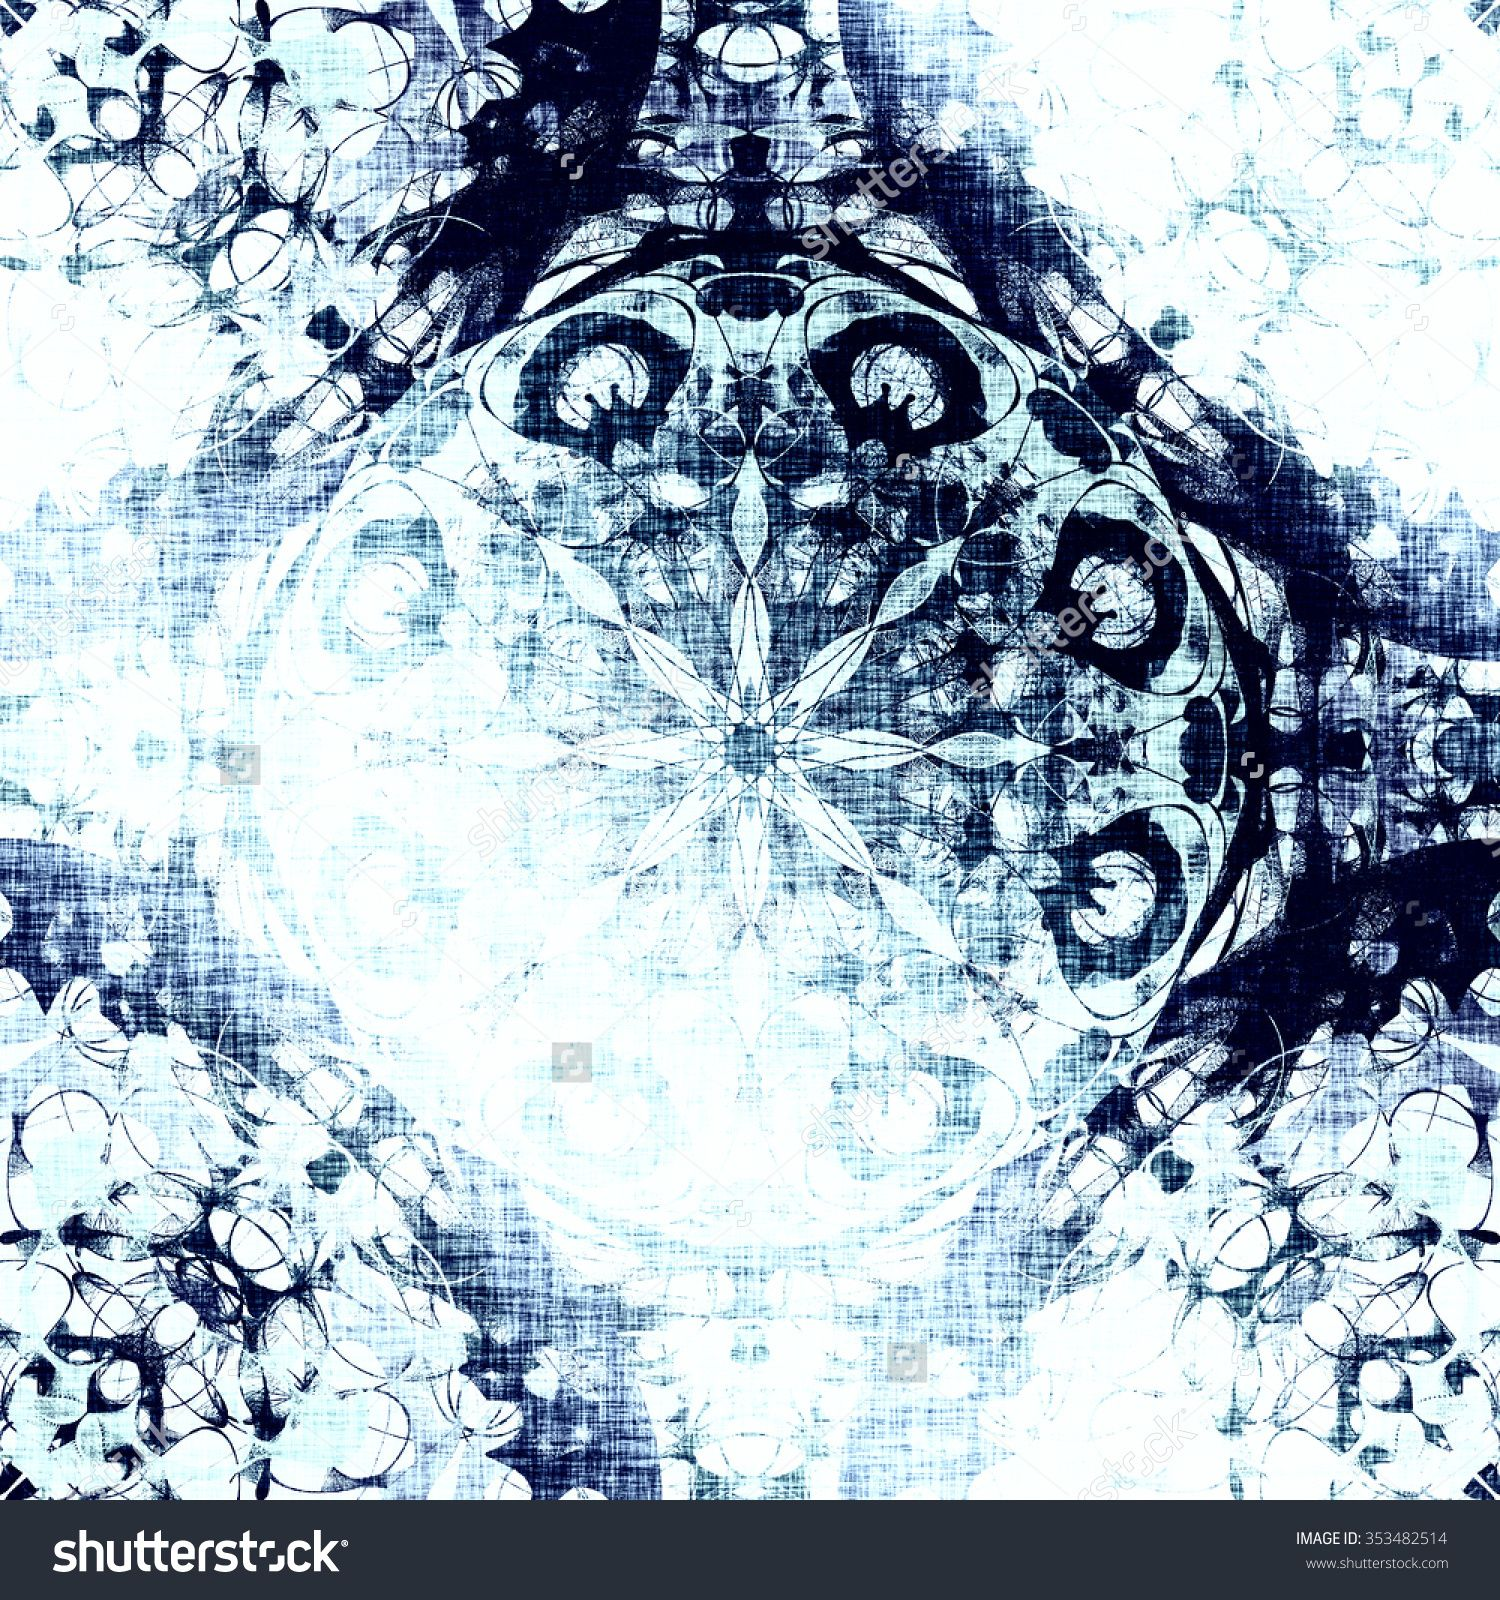 Cold Blue Indian Pattern, Floral Circle With Tribal Traditional Elements. Luxury Christmas Texture, Frozen Snowflake. Boho Textile Background, Oriental Ethnic Carpet Imagen de archivo (stock) 353482514 : Shutterstock